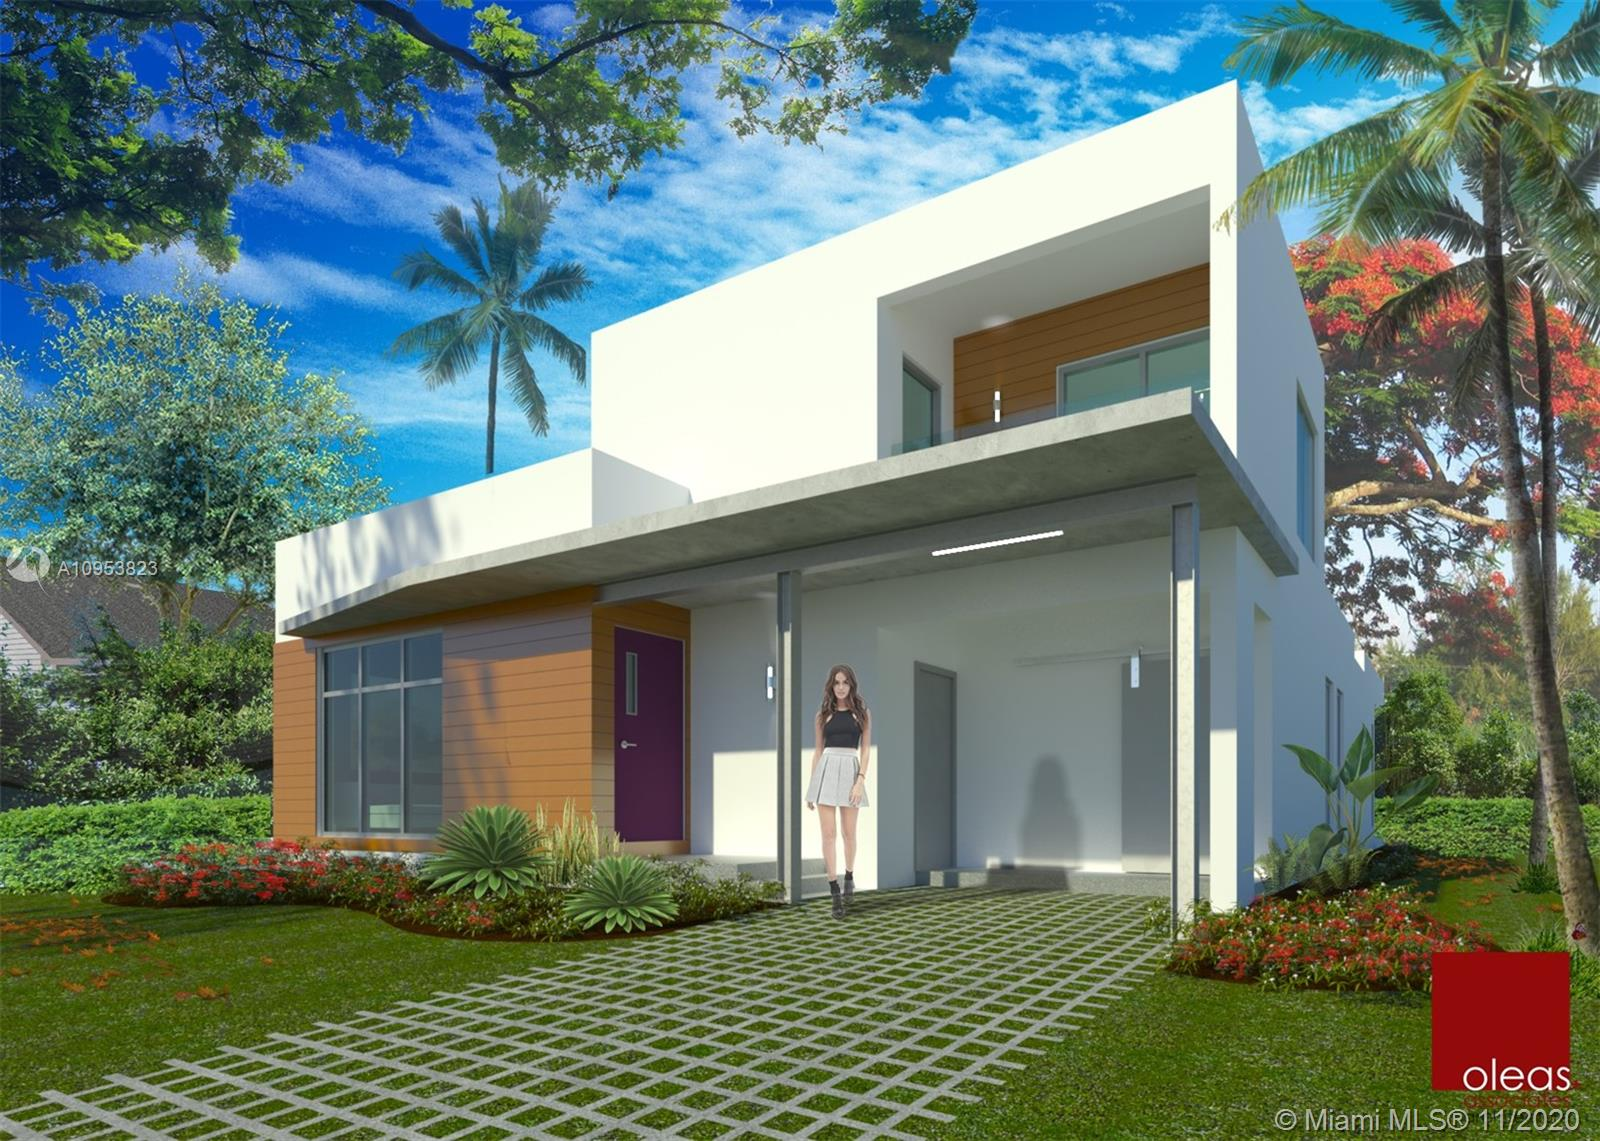 Frow Homestead - 3650 Franklin Ave, Miami, FL 33133